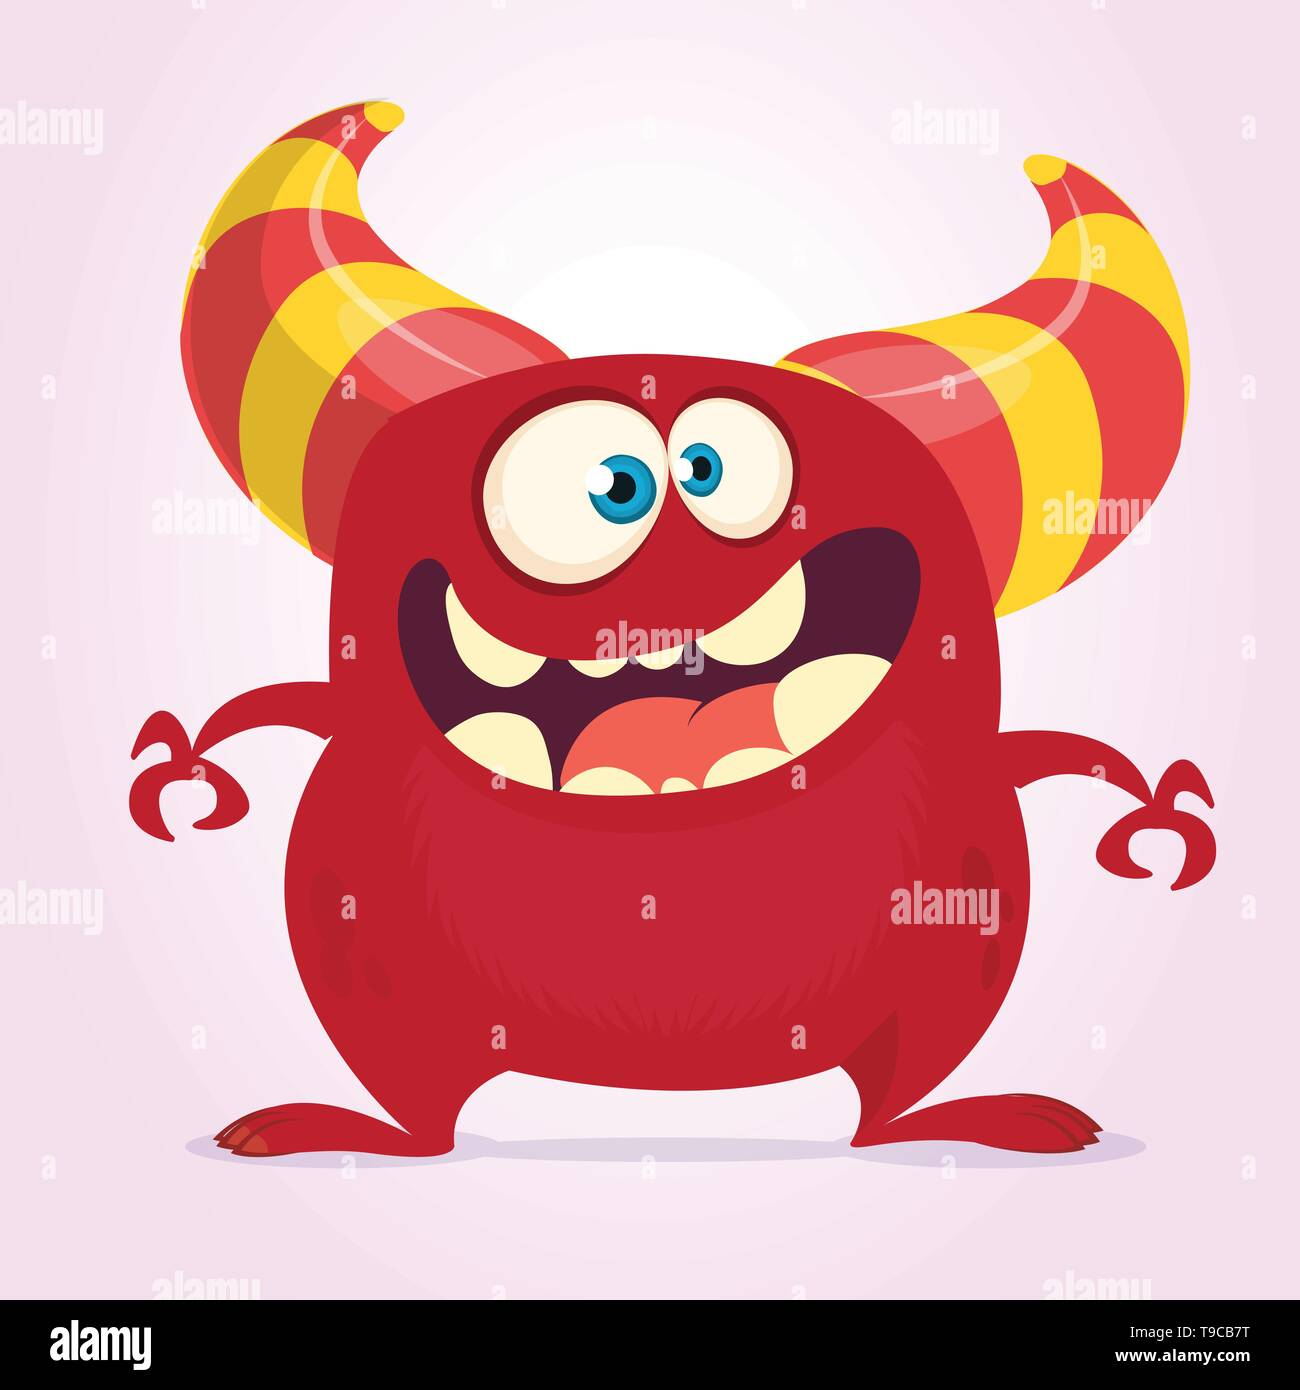 Cool cartoon monster with horns. Vector red monster illustration. Halloween design - Stock Image